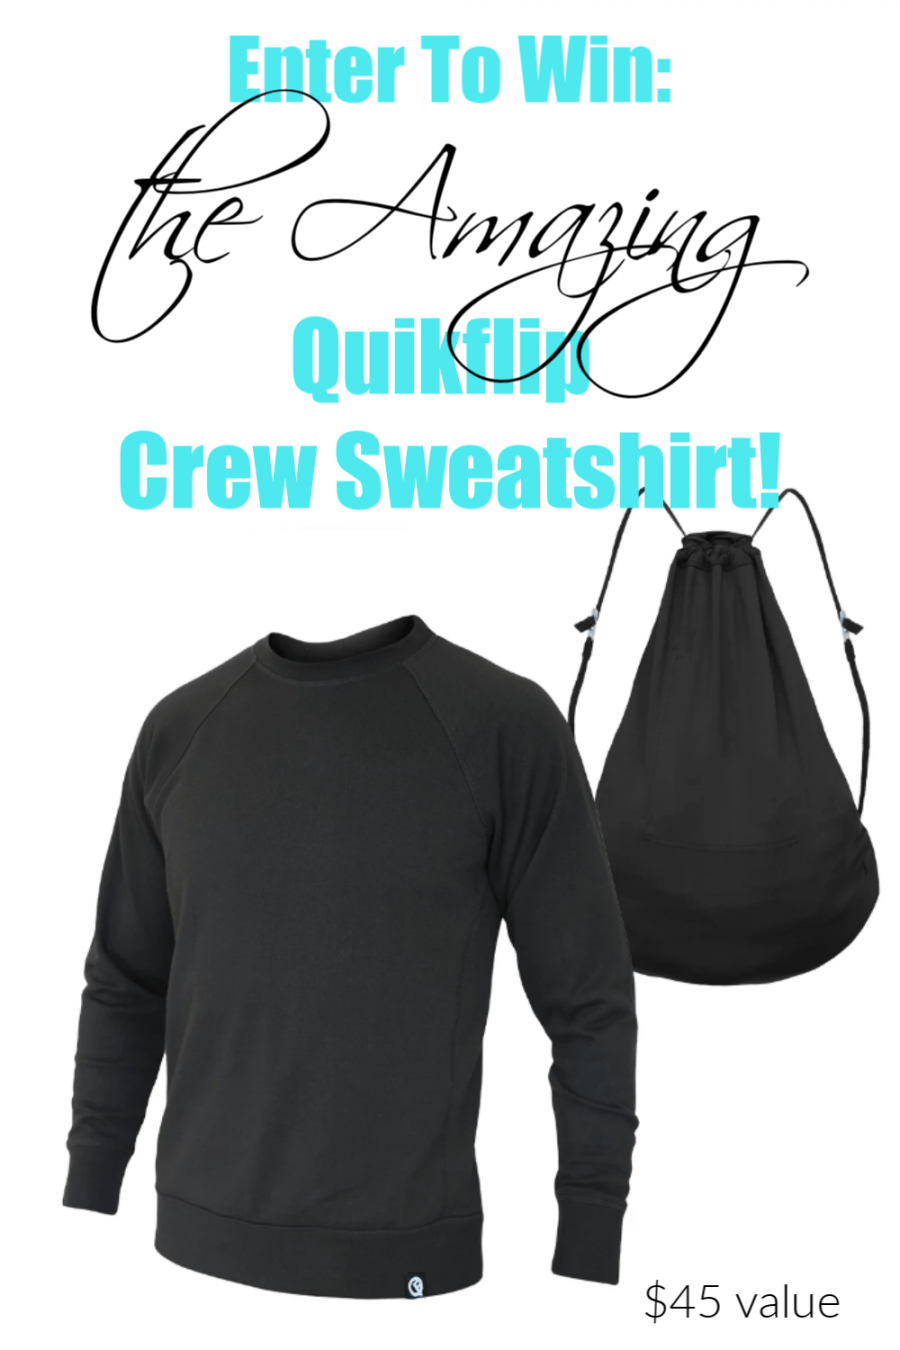 Quikflip Sweatshirt Review & Giveaway